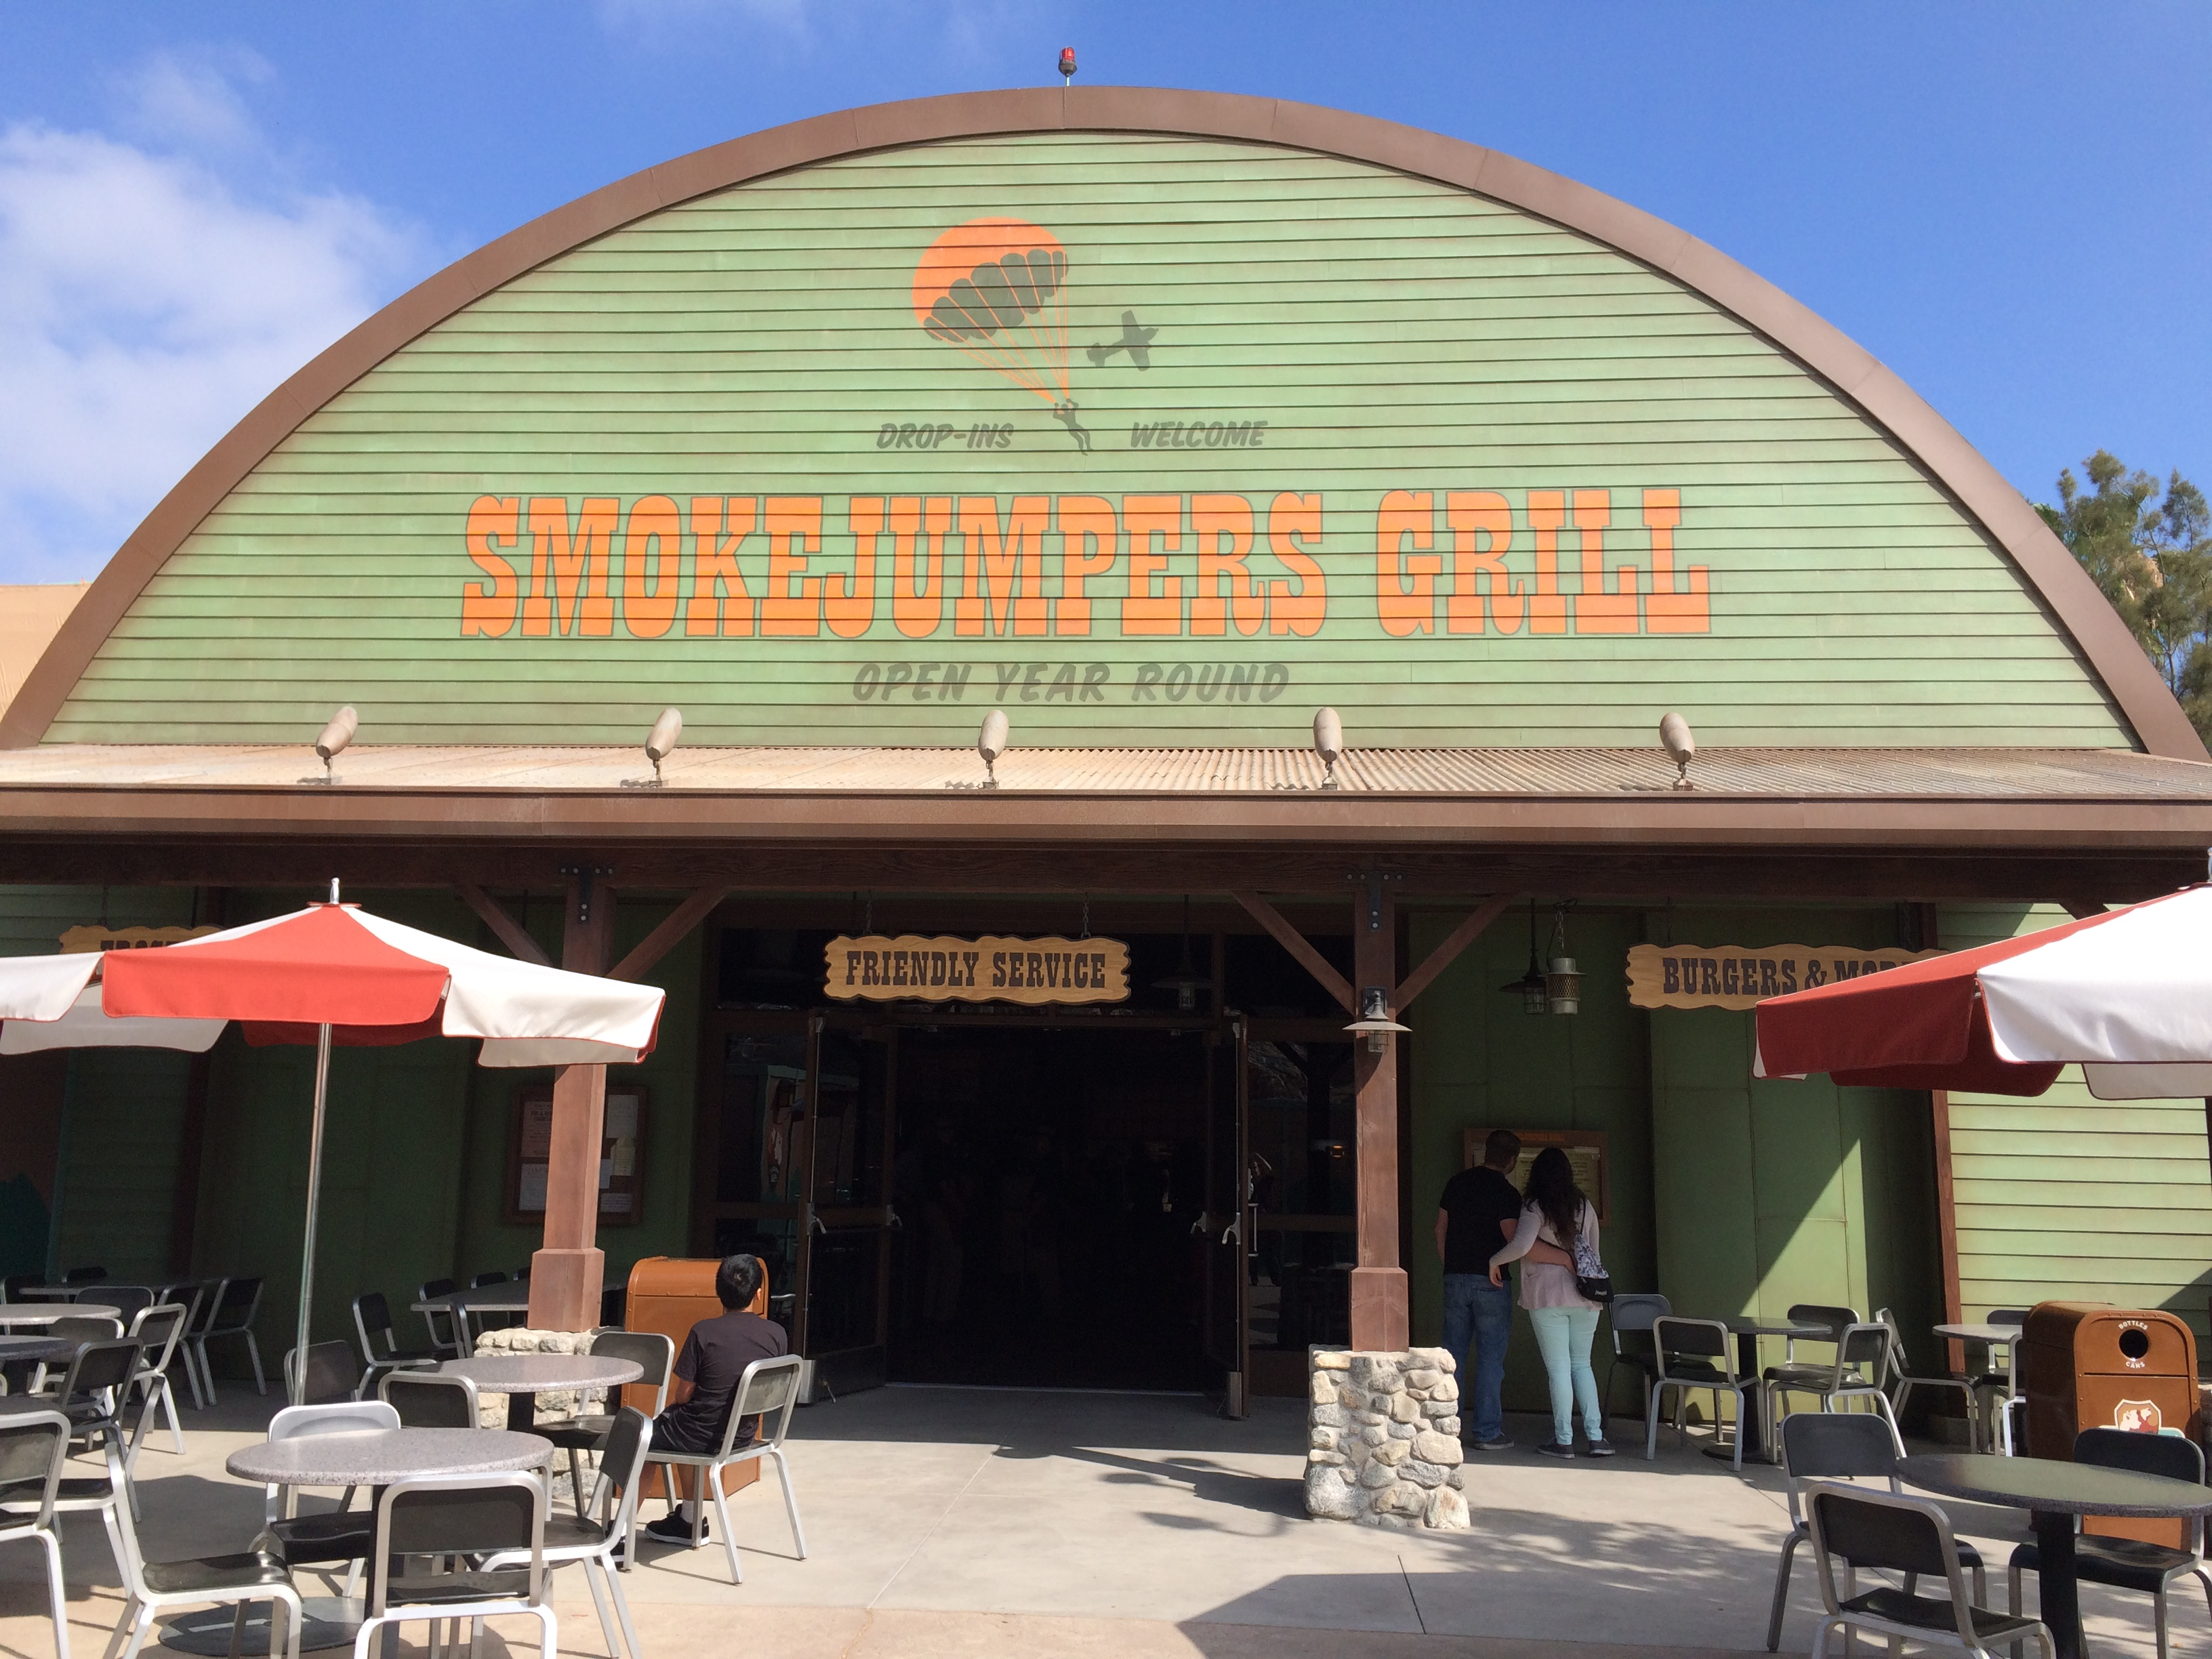 Smokejumpers Grill opens in Disney California Adventure